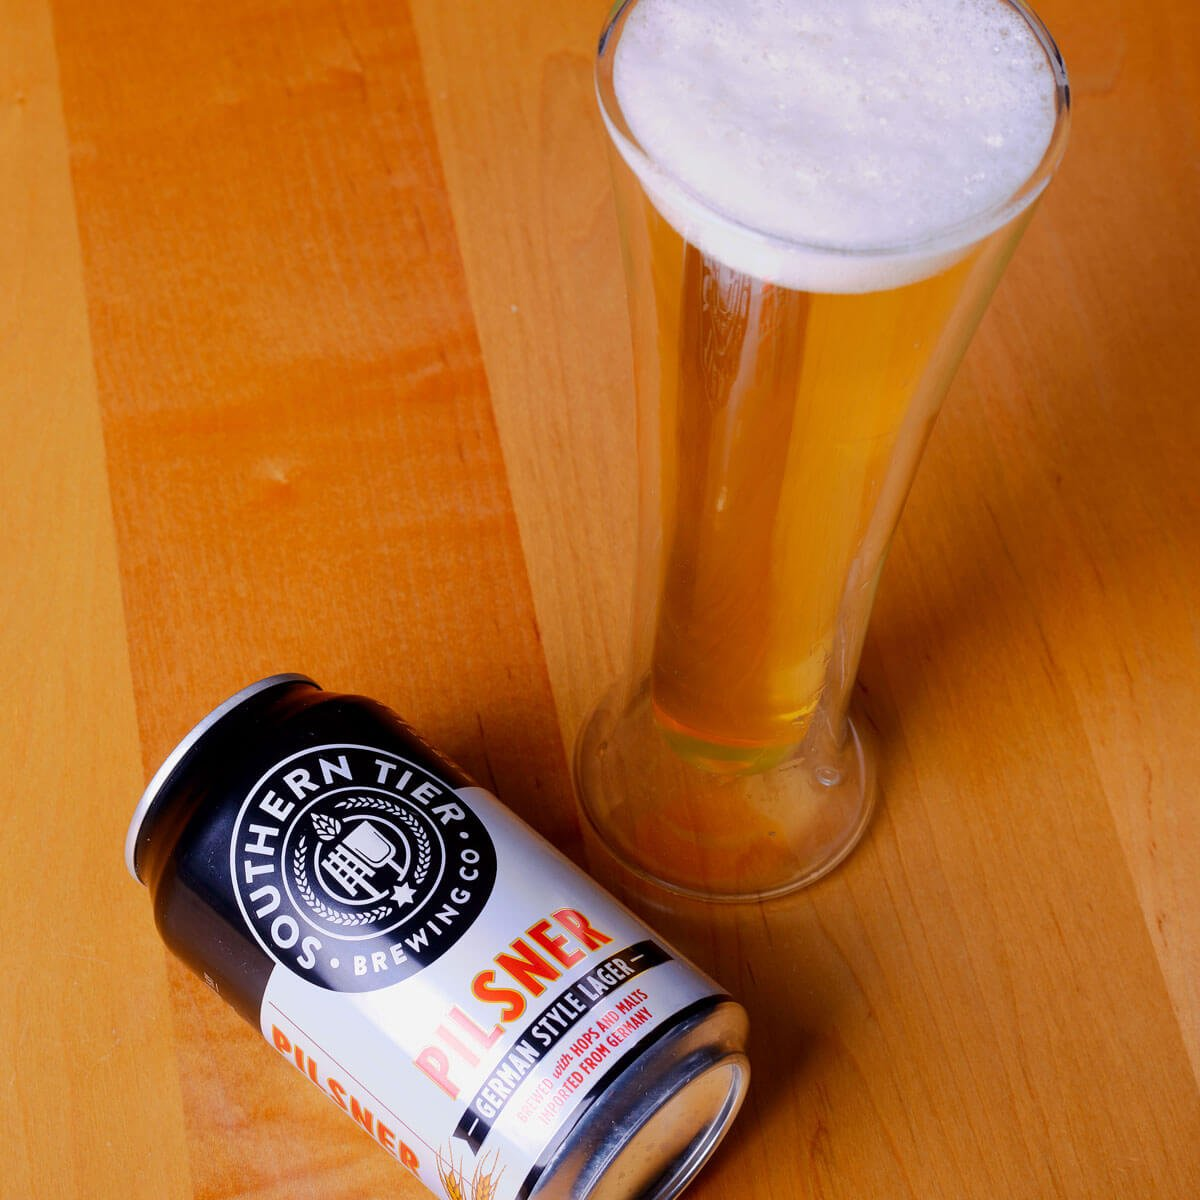 Southern Tier Pilsner, a German-style Pilsener by Southern Tier Brewing Co.